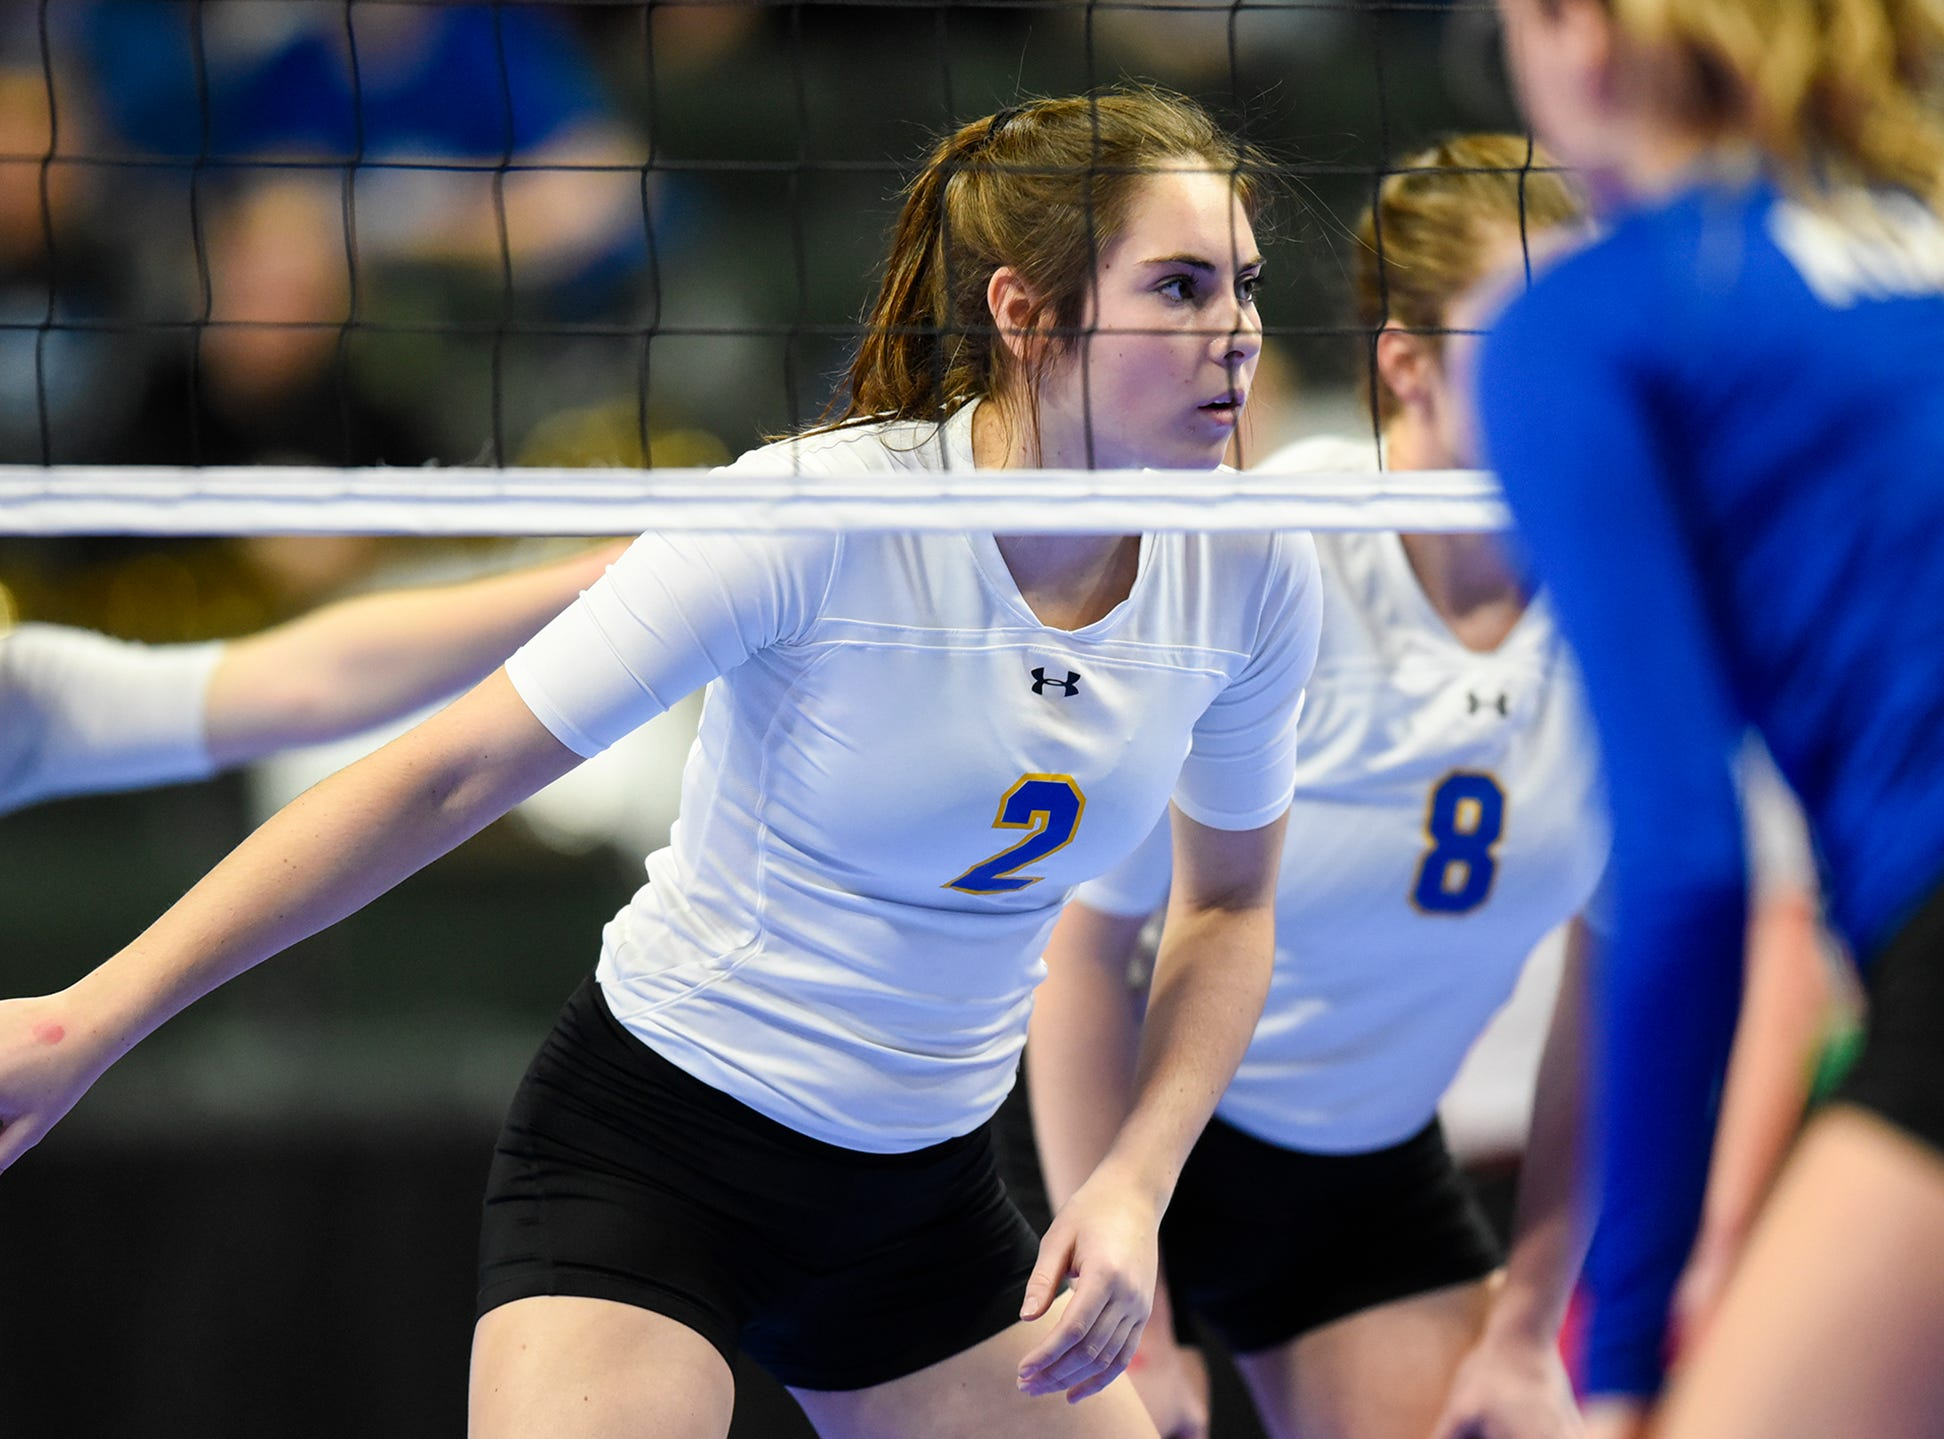 Cathedral's Lucy Pelzel concentrates before a serve during the state Class 2A quarterfinals Thursday, Nov. 8, at the Xcel Energy Center in St. Paul.